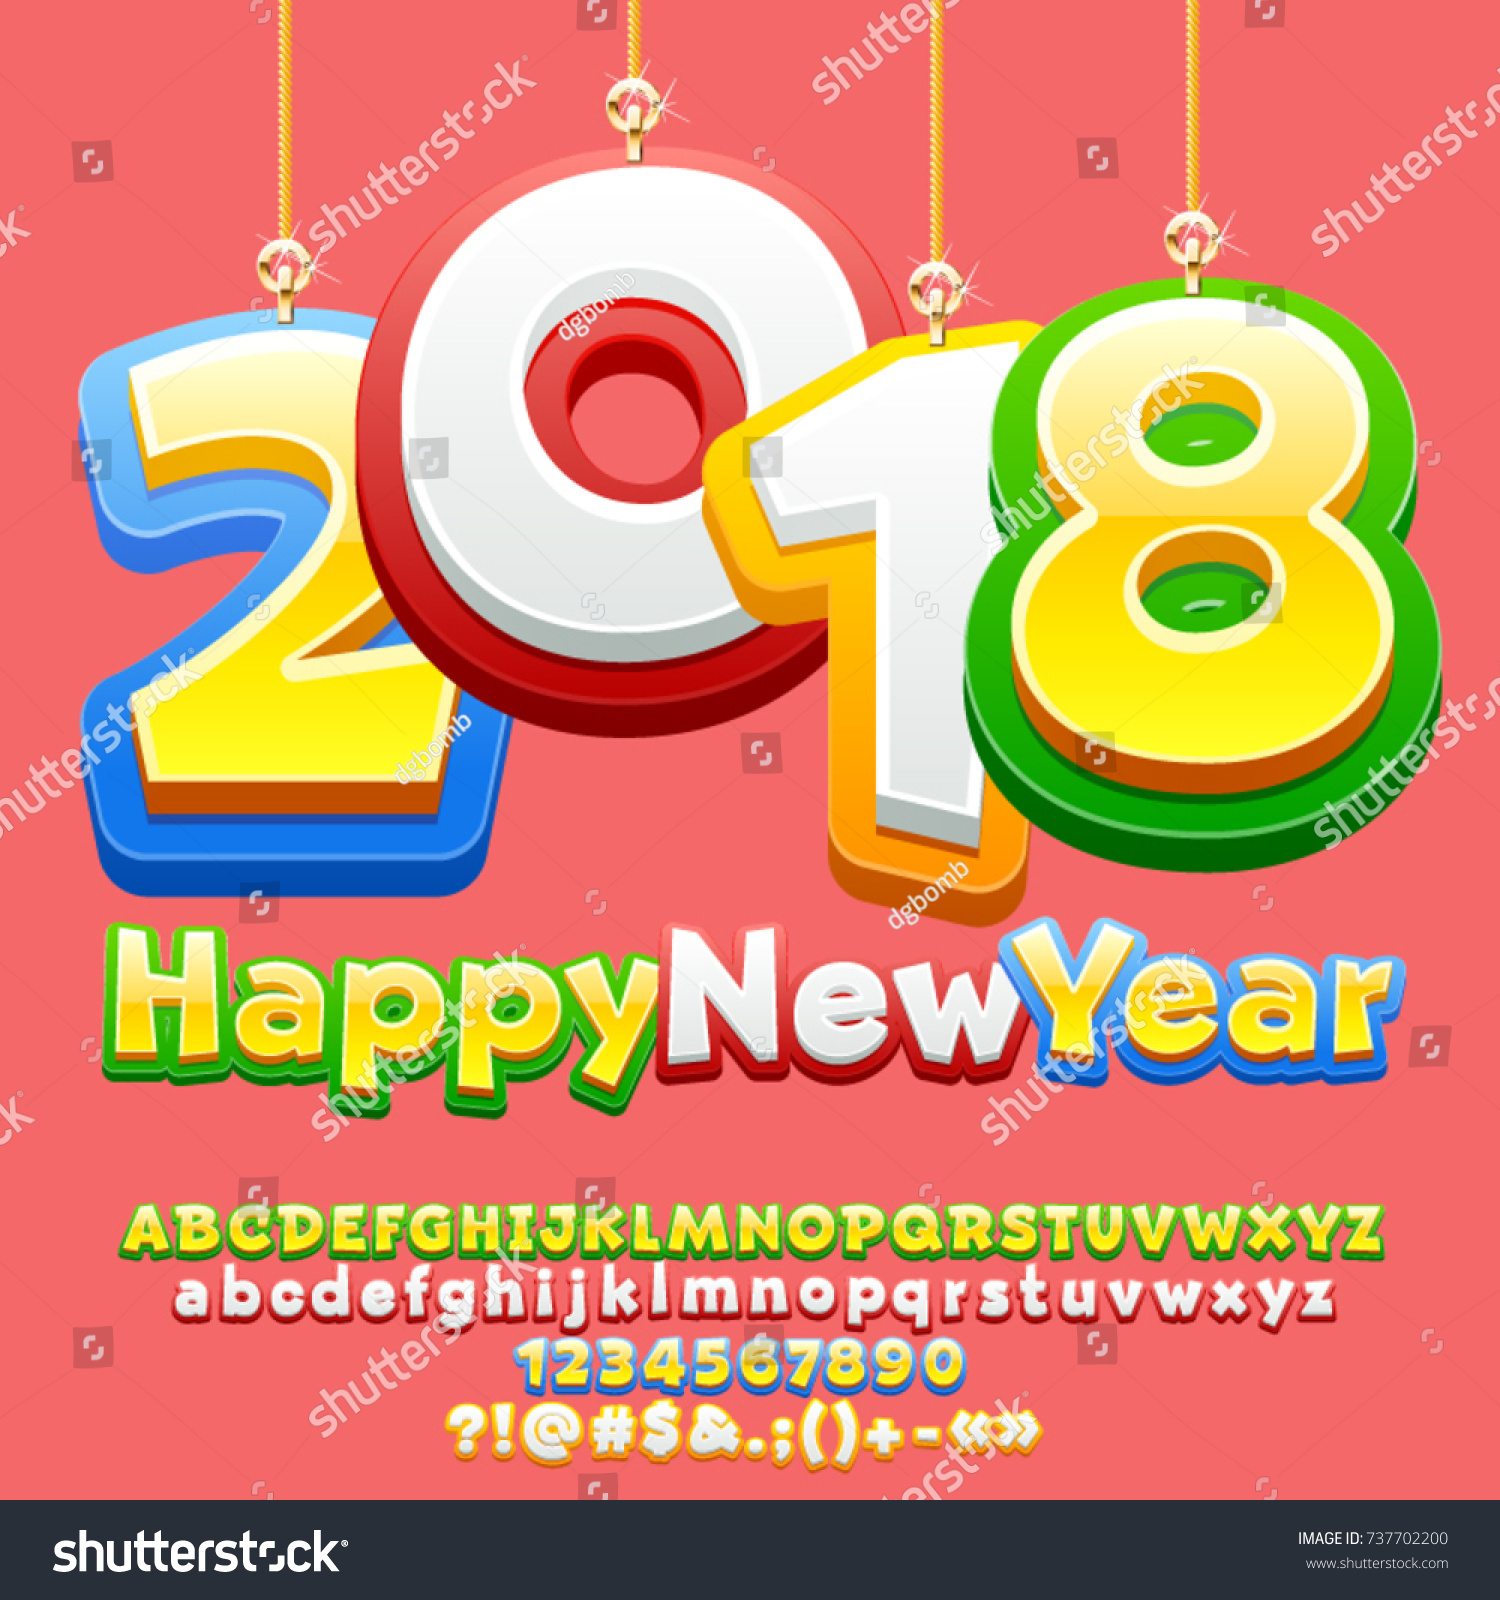 vector happy new year 2018 greeting card for children with cute christmas toys funny alphabet